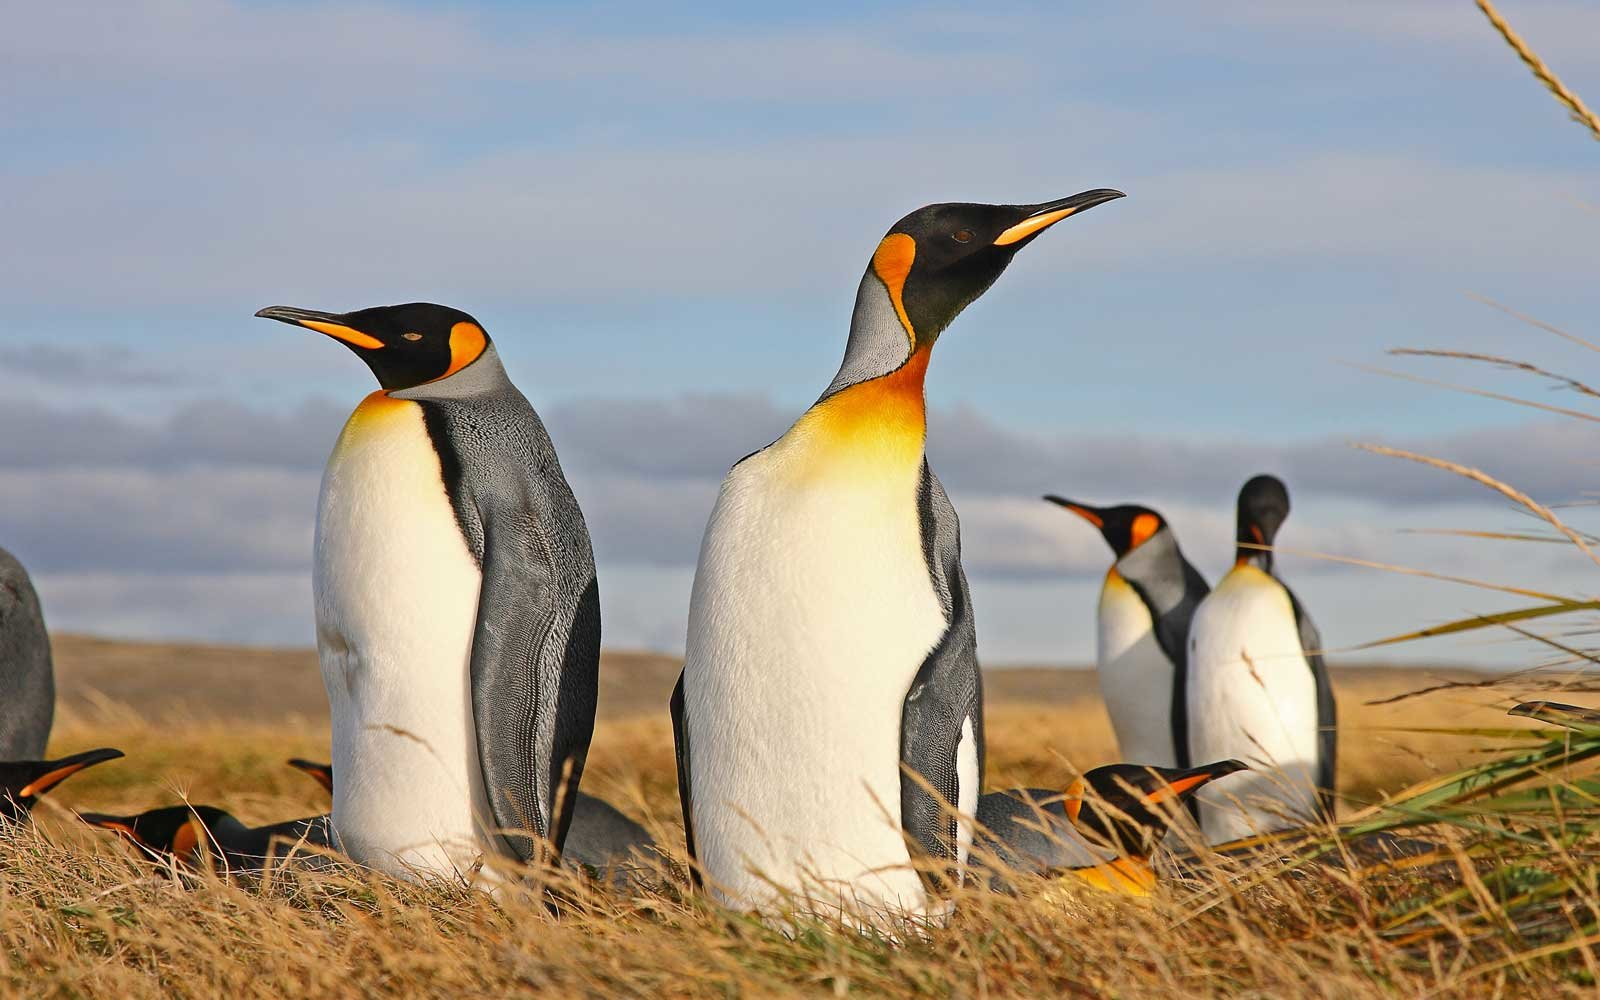 King penguins in Chile